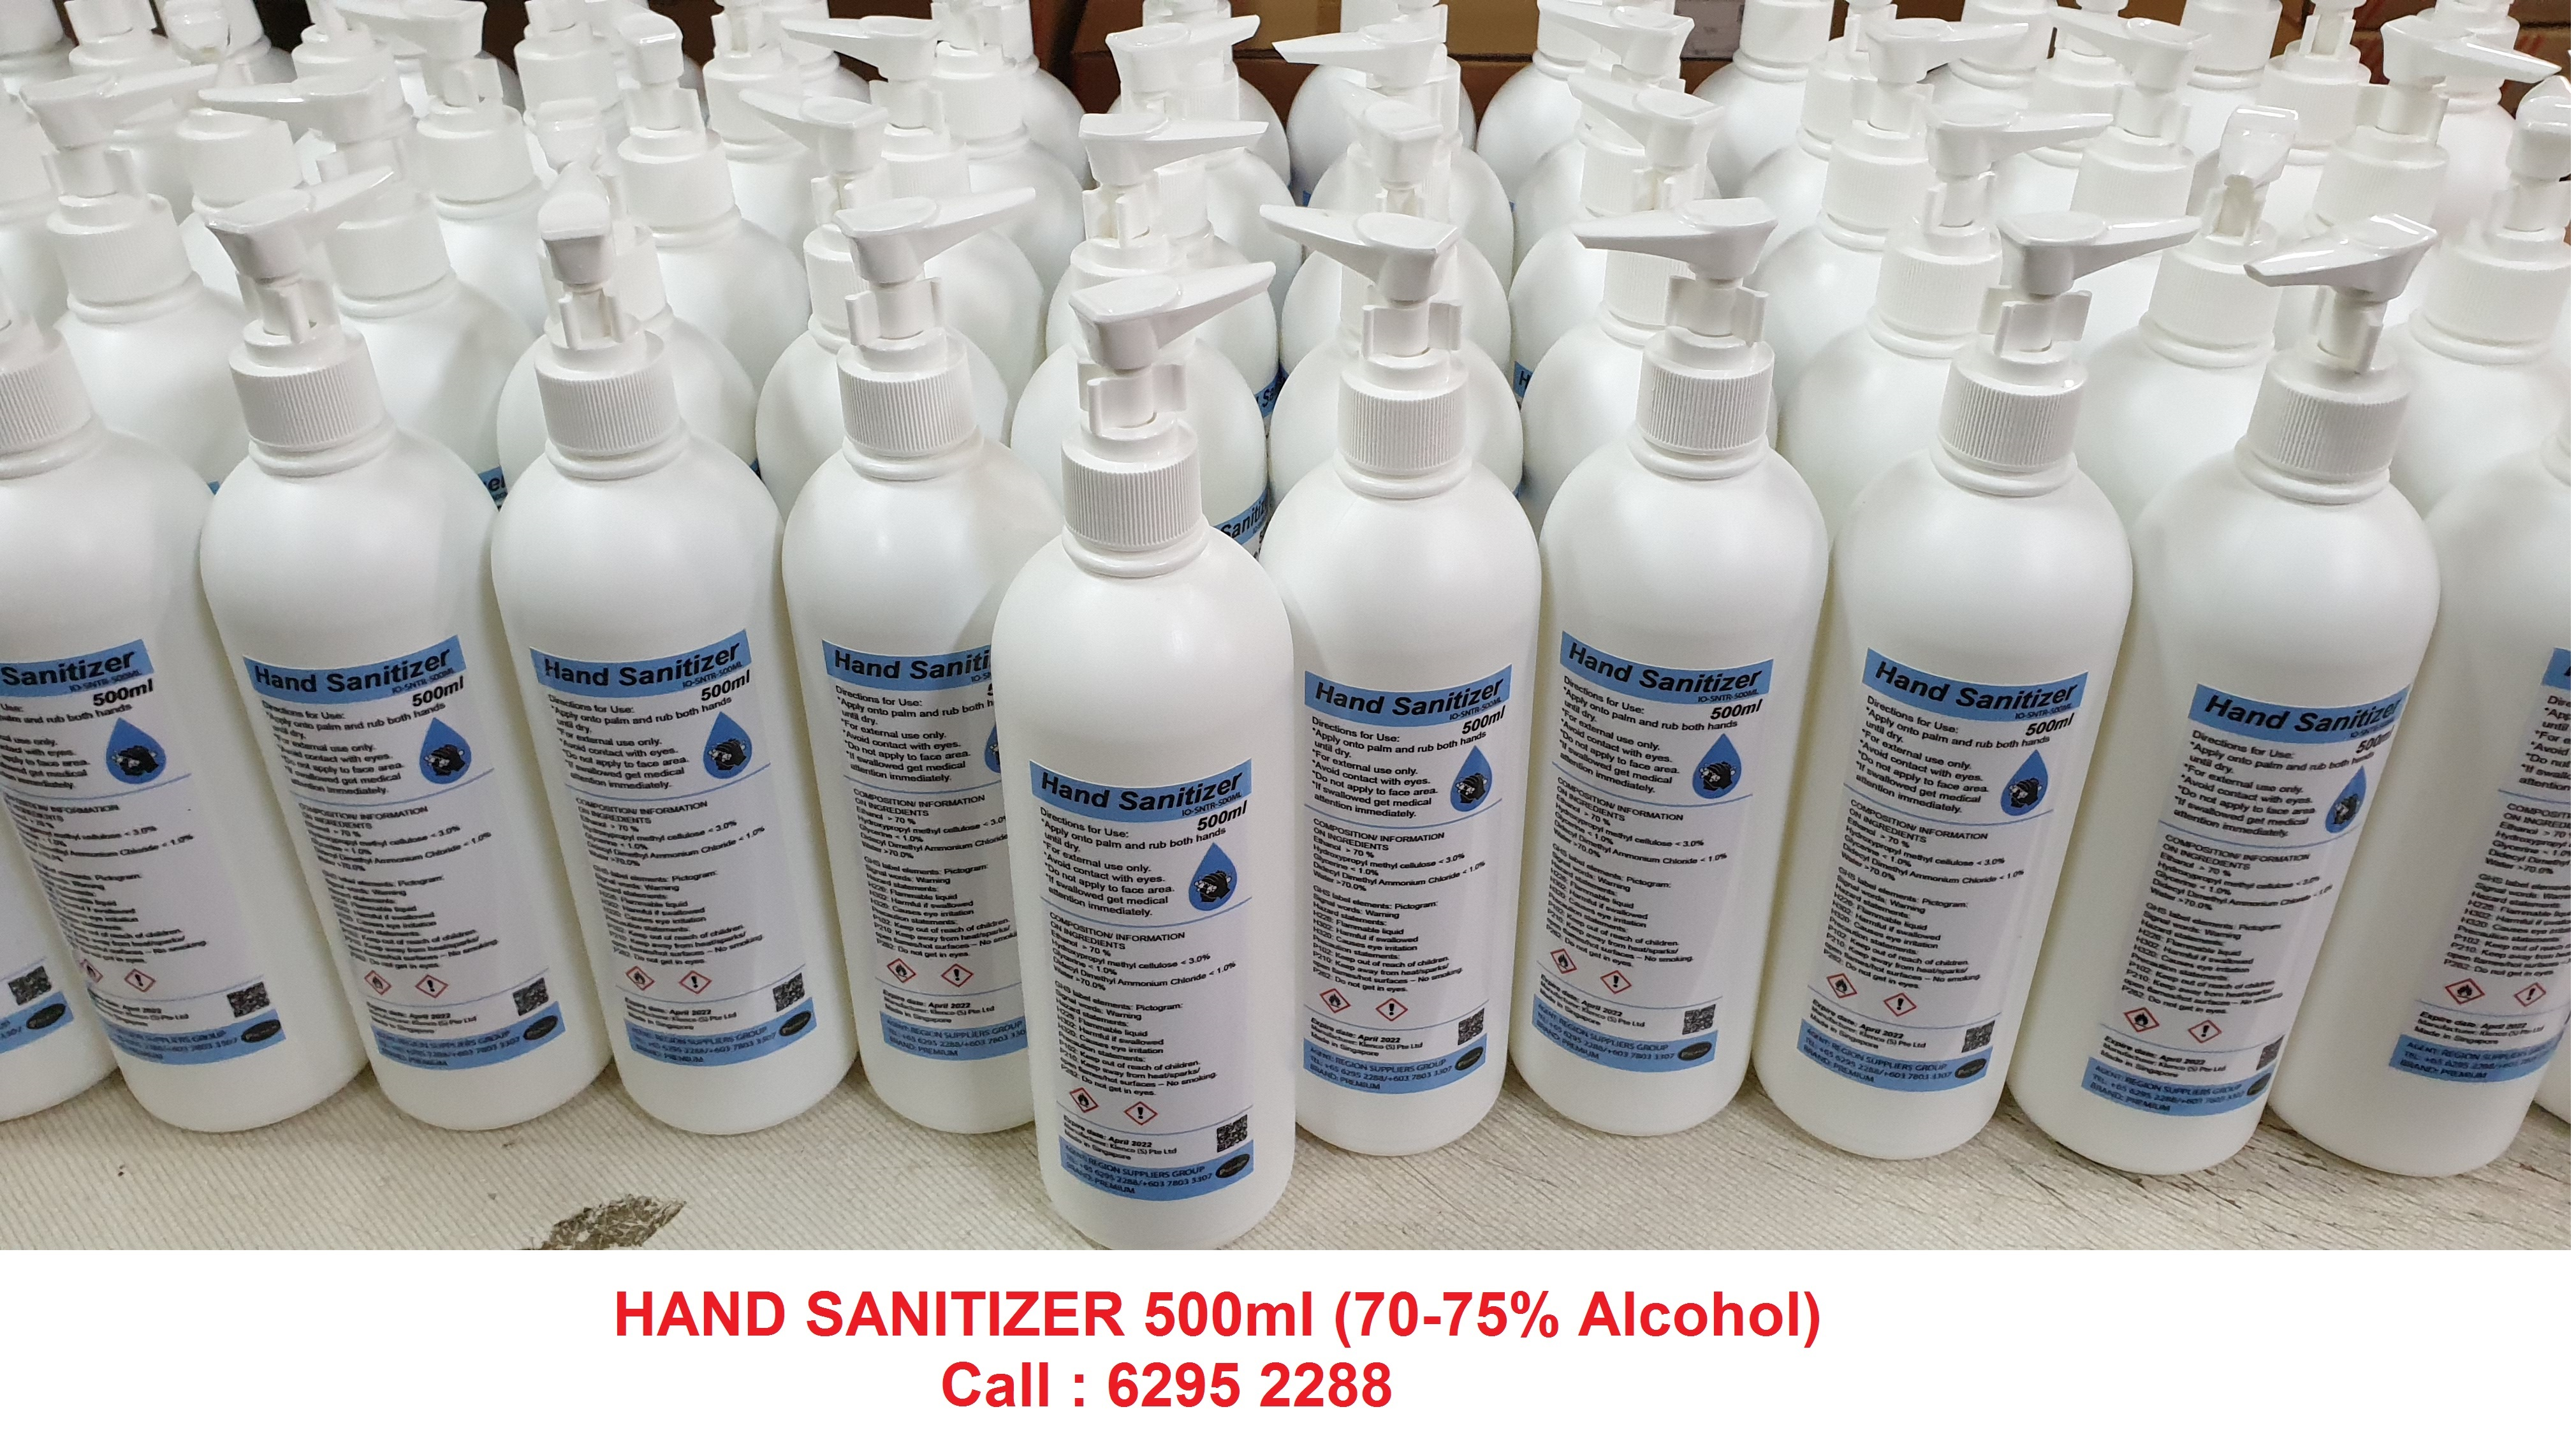 Hand Sanitizer 500ml  - 70-75% Alcohol (50ml, 70ml and  5000ml avaliable)